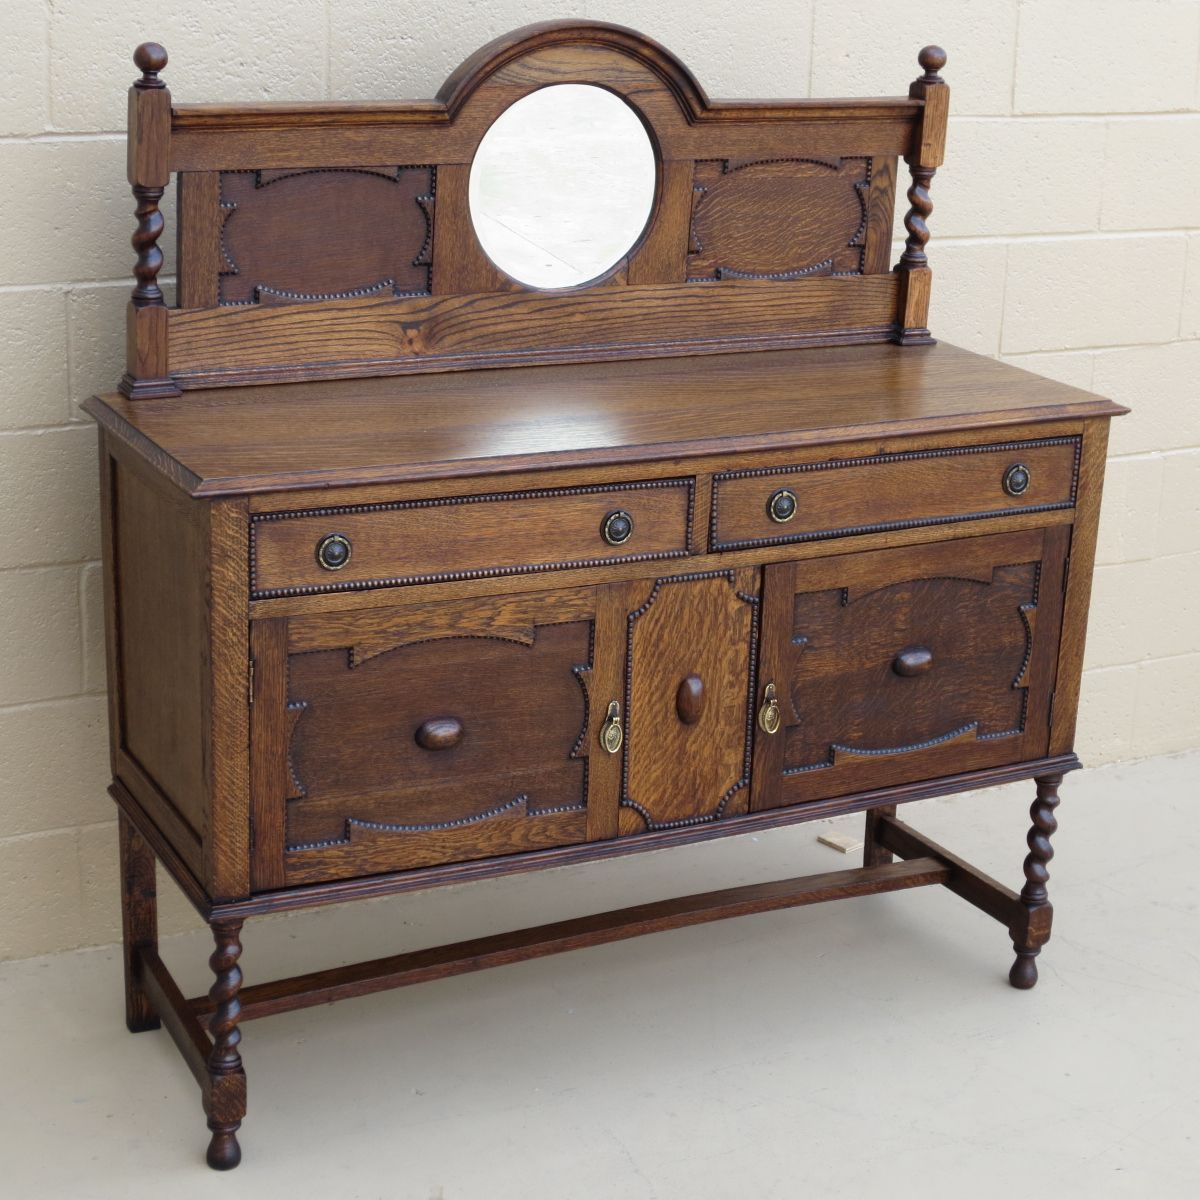 Antique Sideboard Furniture English